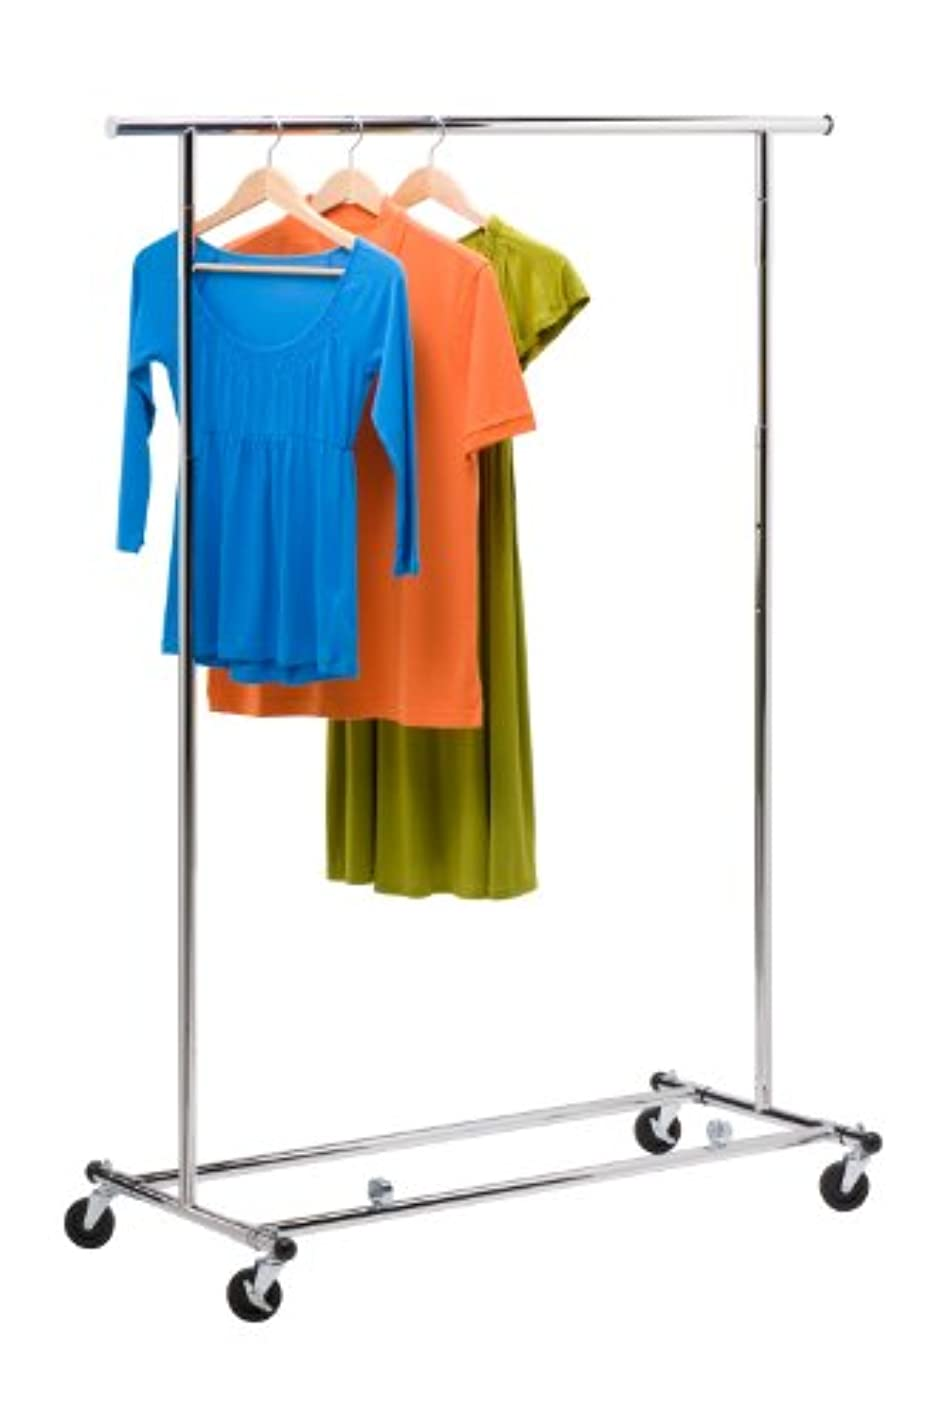 Honey-Can-Do GAR-01304 Collapsible Commercial Garment Rack with Wheels, Chrome